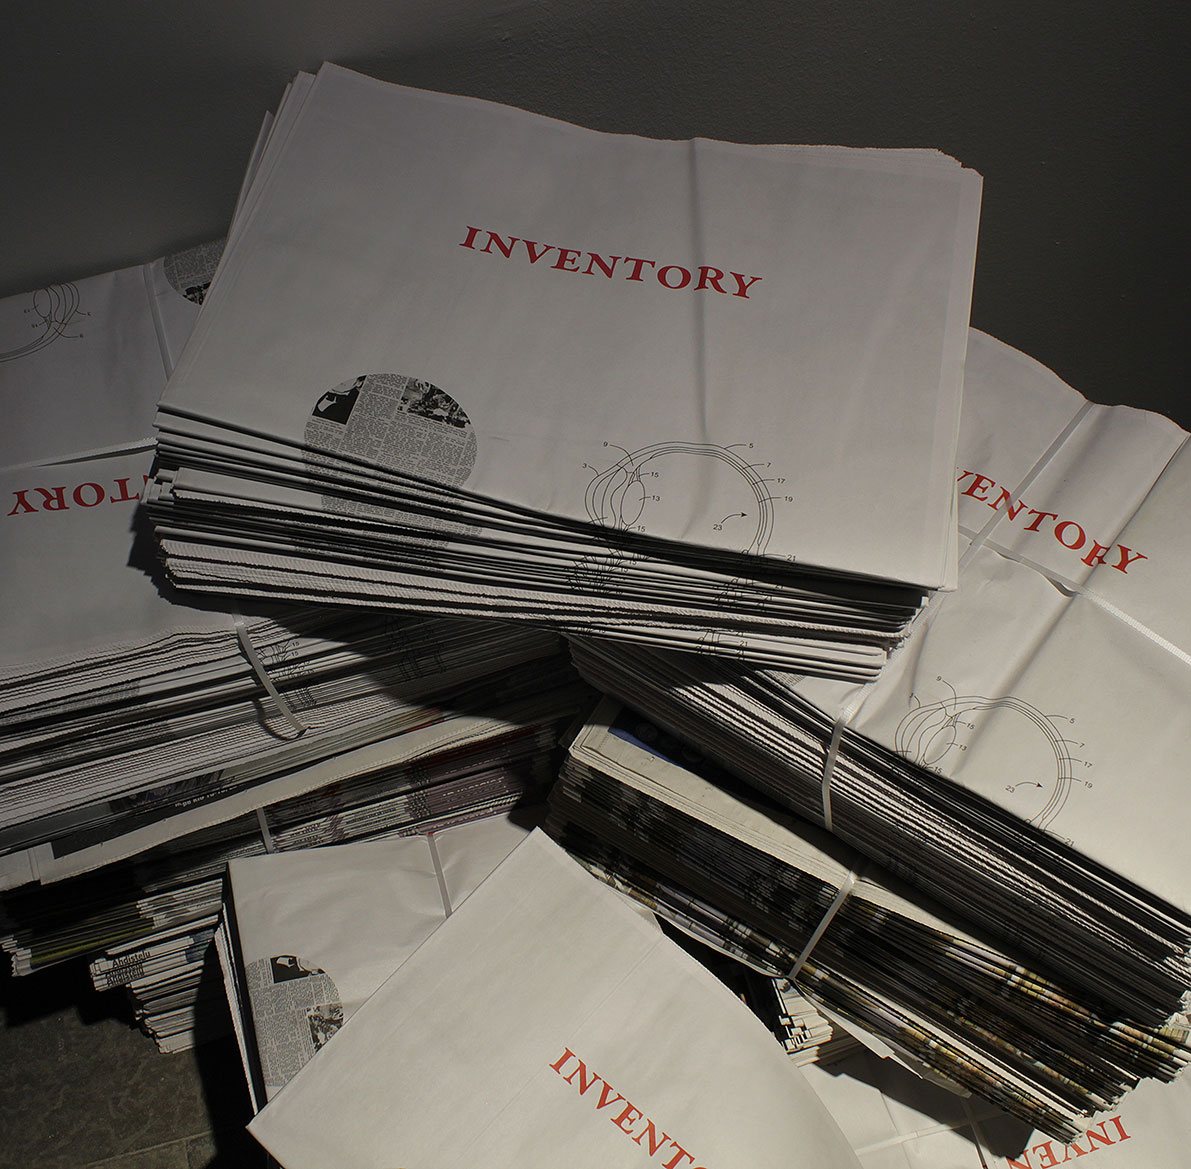 Inventory, Broadsheet newspaper